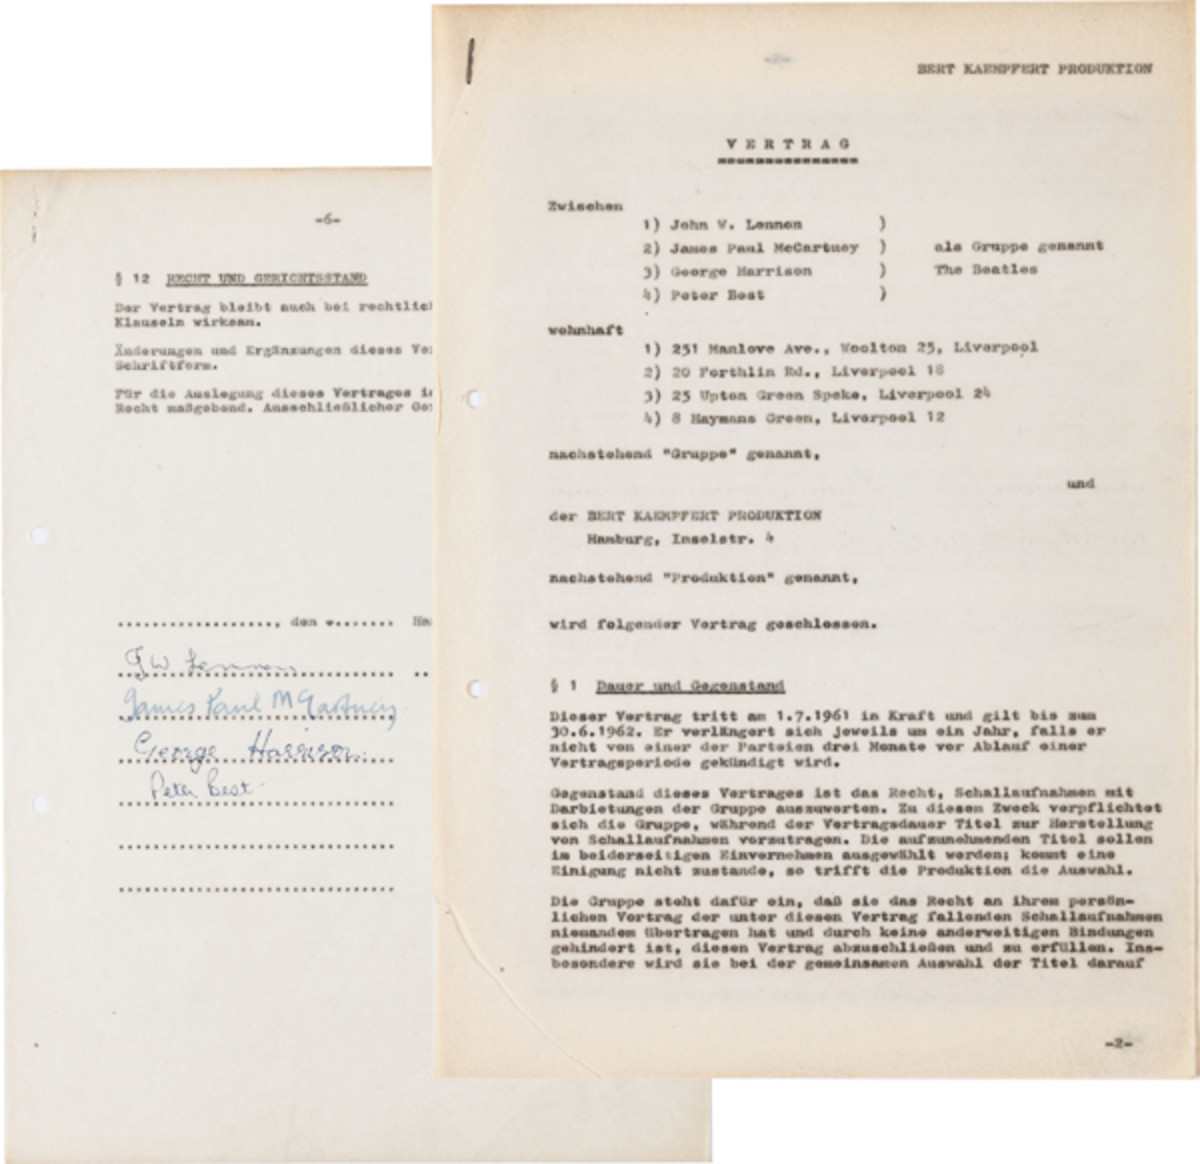 Beatles-Recording-Contract-Heritage-Auctions